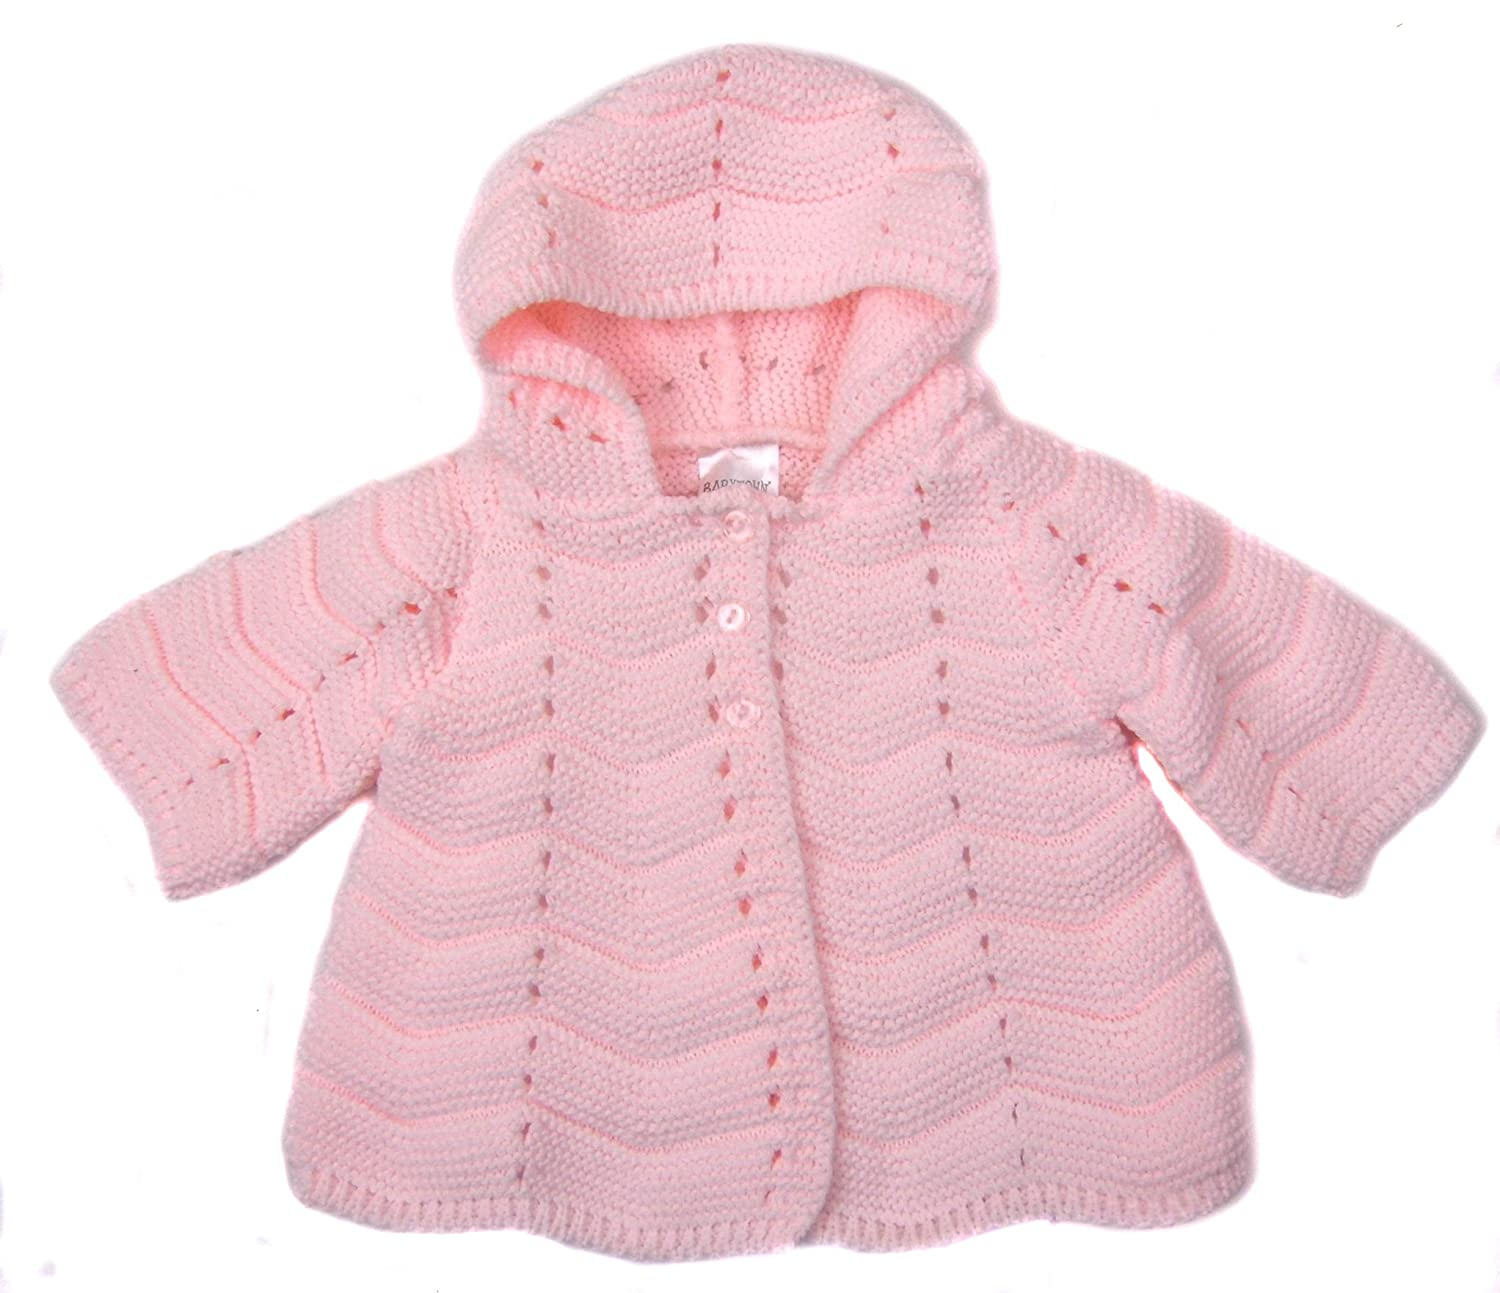 Baby Cardigan Hooded Jacket Traditional Styling Pink or White Pink)